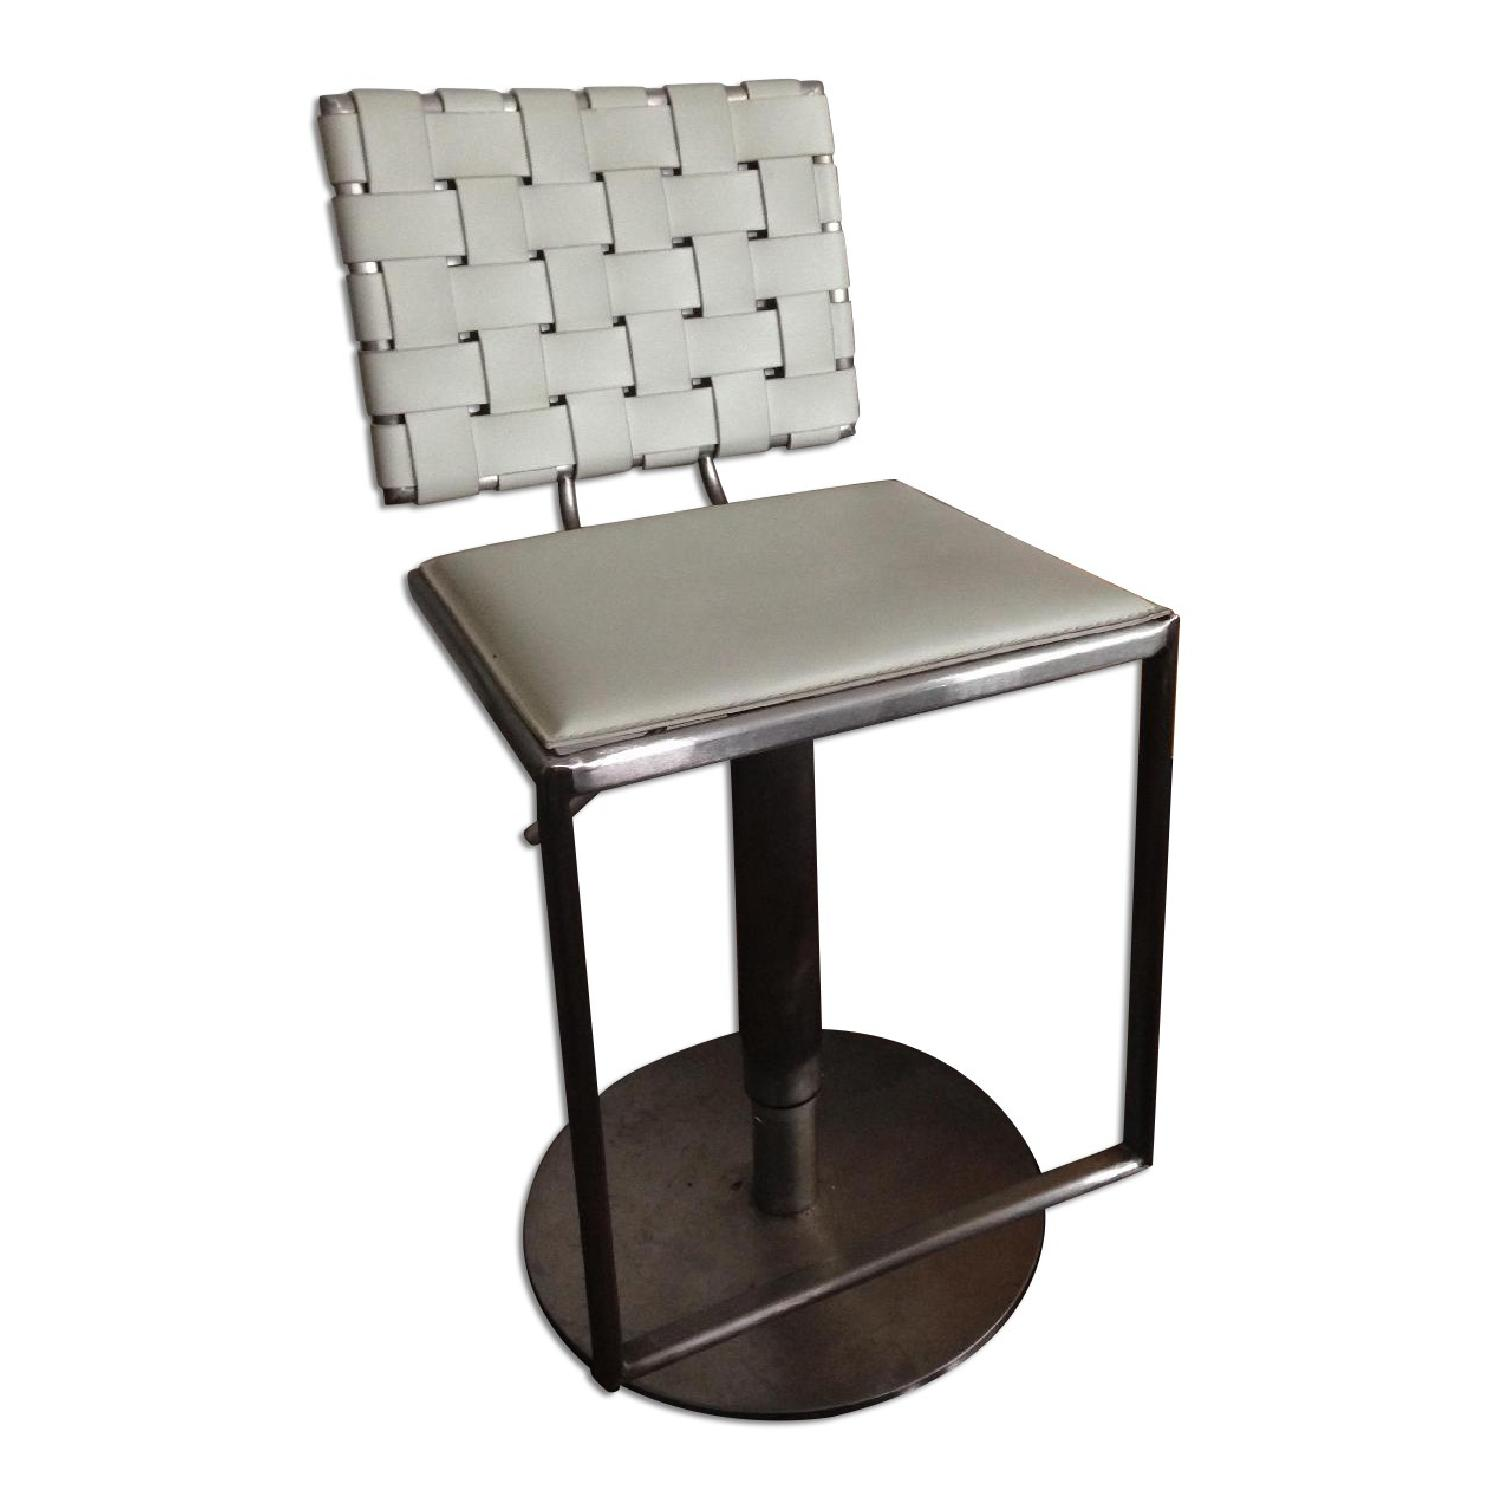 Modani White Woven Leather Adjustable Barstools/Chairs